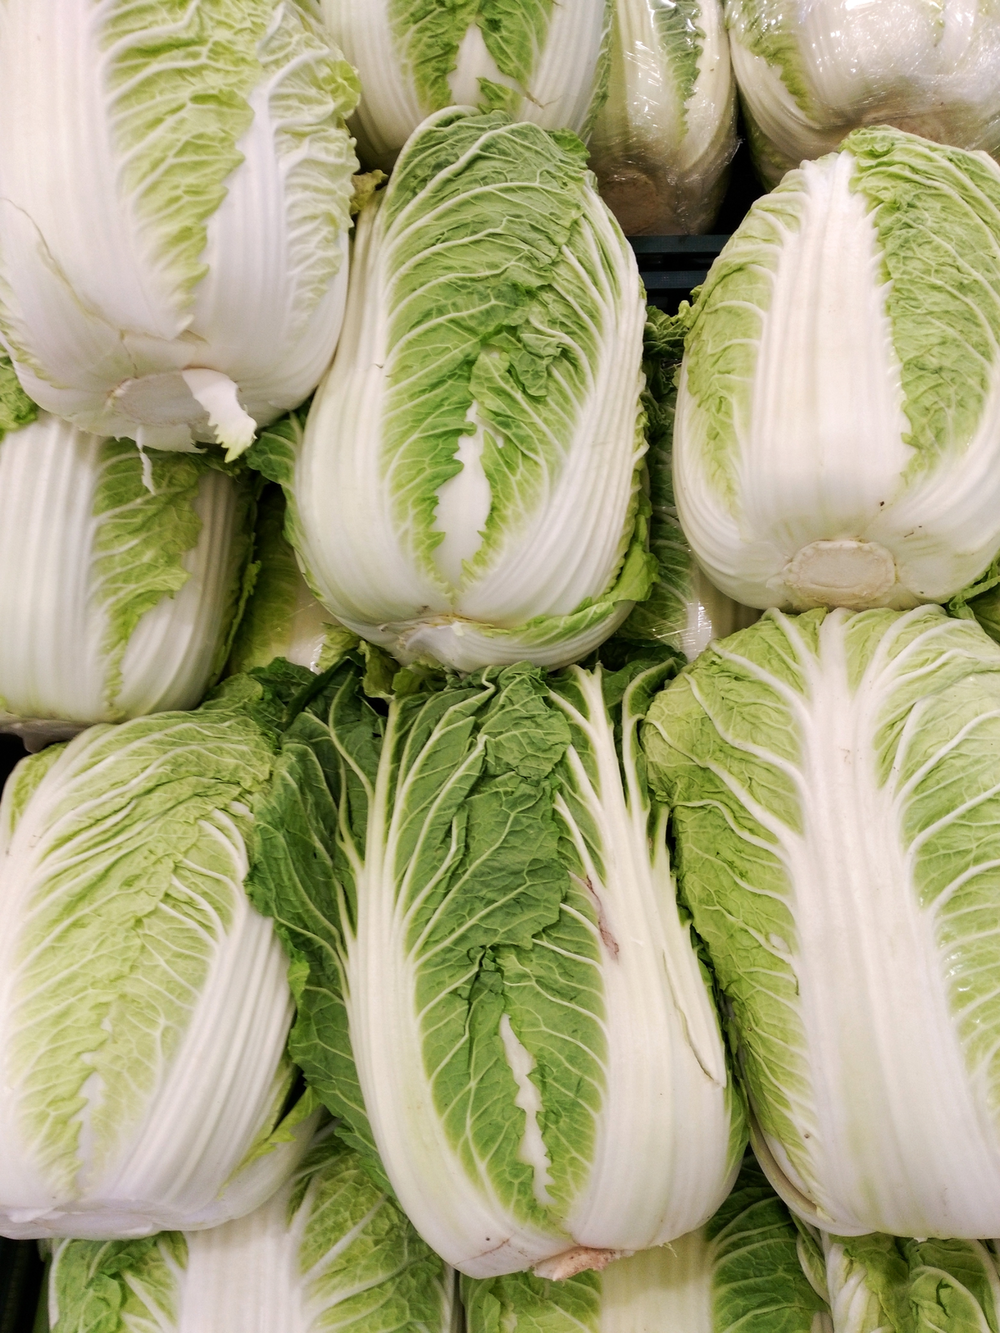 1200px-Napa_cabbages.png